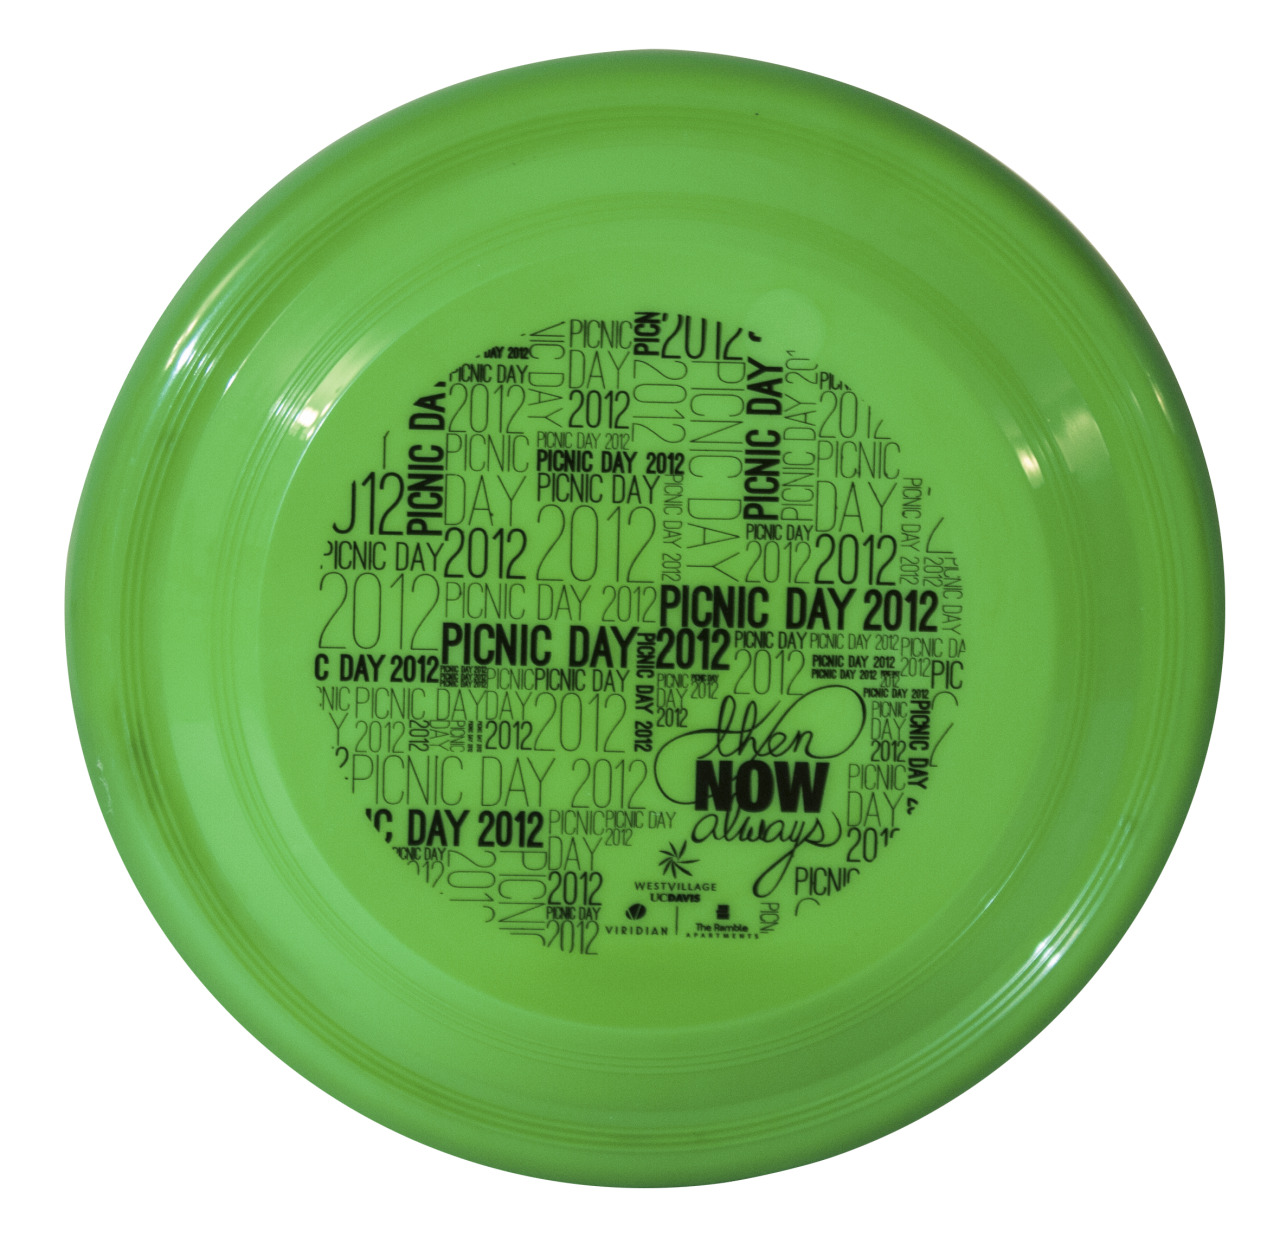 what could be more fun to design than a frisbee? That's right, NOTHING! Here's a frisbee I designed as a promotional piece for UC Davis Picnic Day, which just happens to be the largest student-run event in the country. I can't decide what was more fun, designing this or tossing them out to eager students.